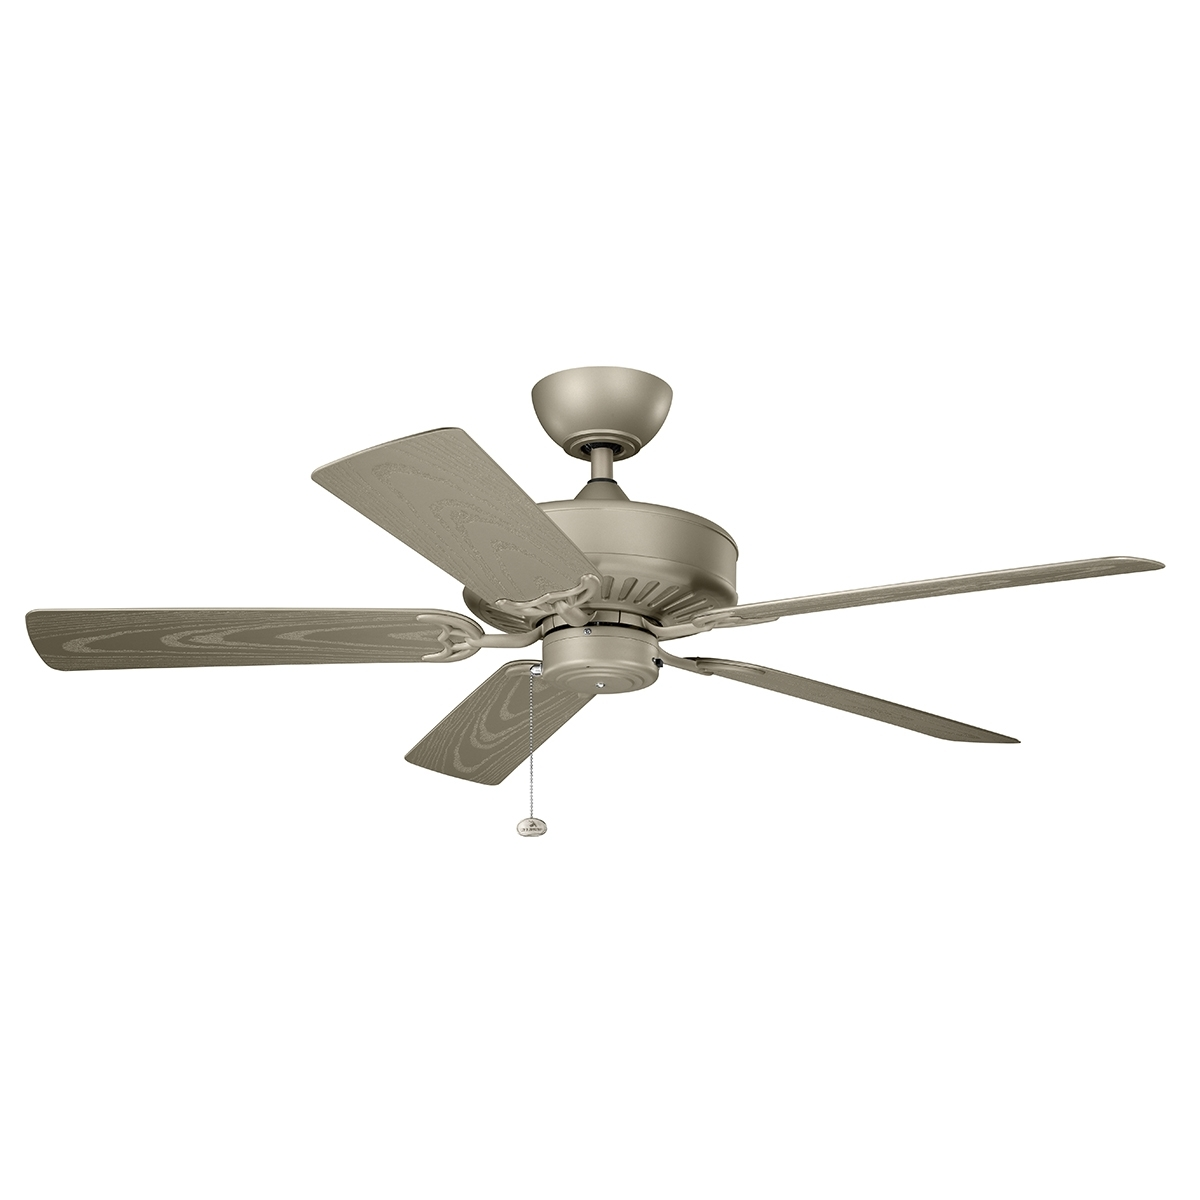 310145Ans In Well Known Outdoor Ceiling Fans At Kichler (Gallery 1 of 20)